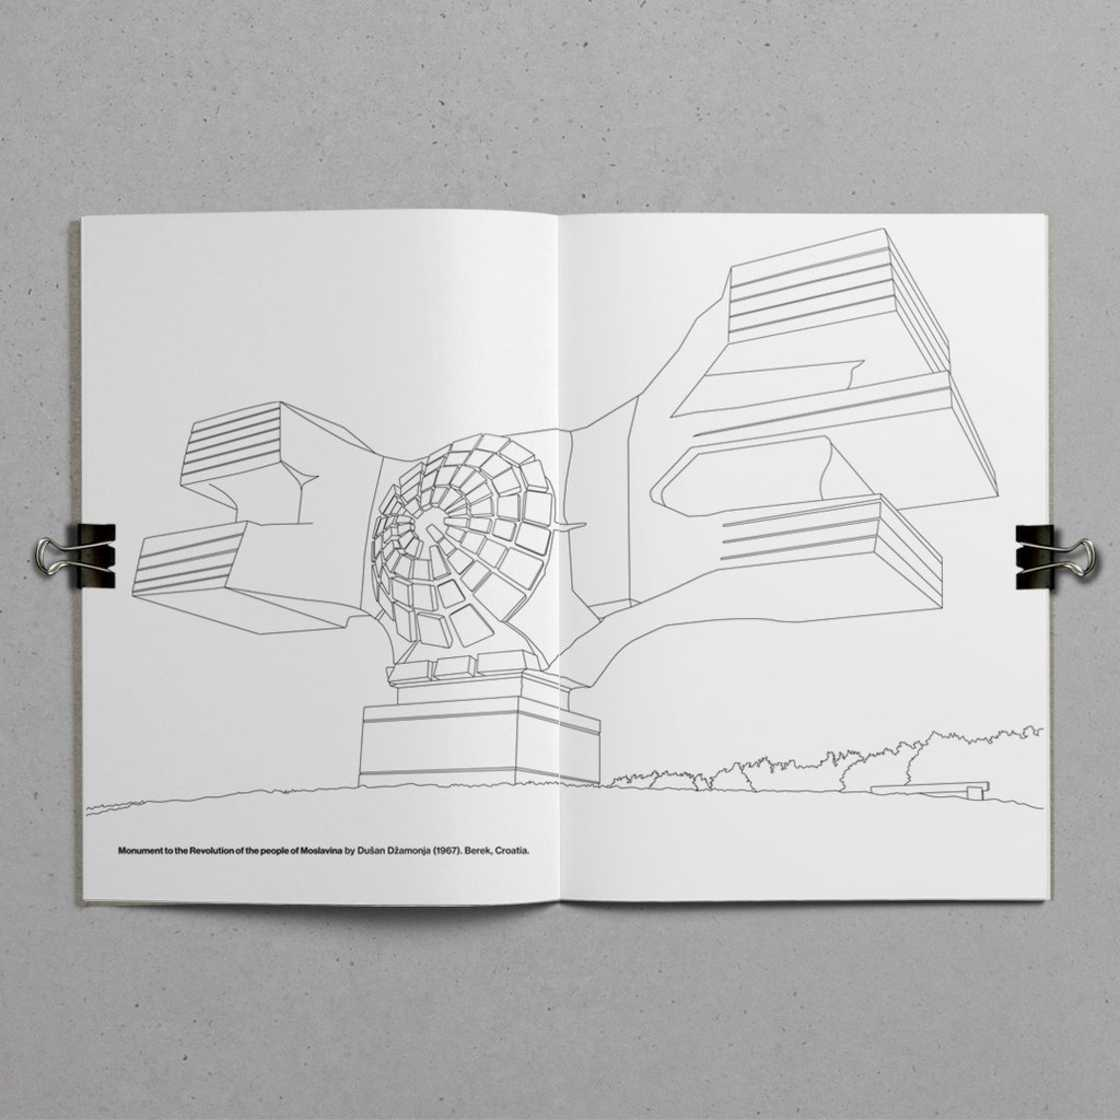 Brutalist Colouring Book – The coloring book of brutalist architecture (8 pics)